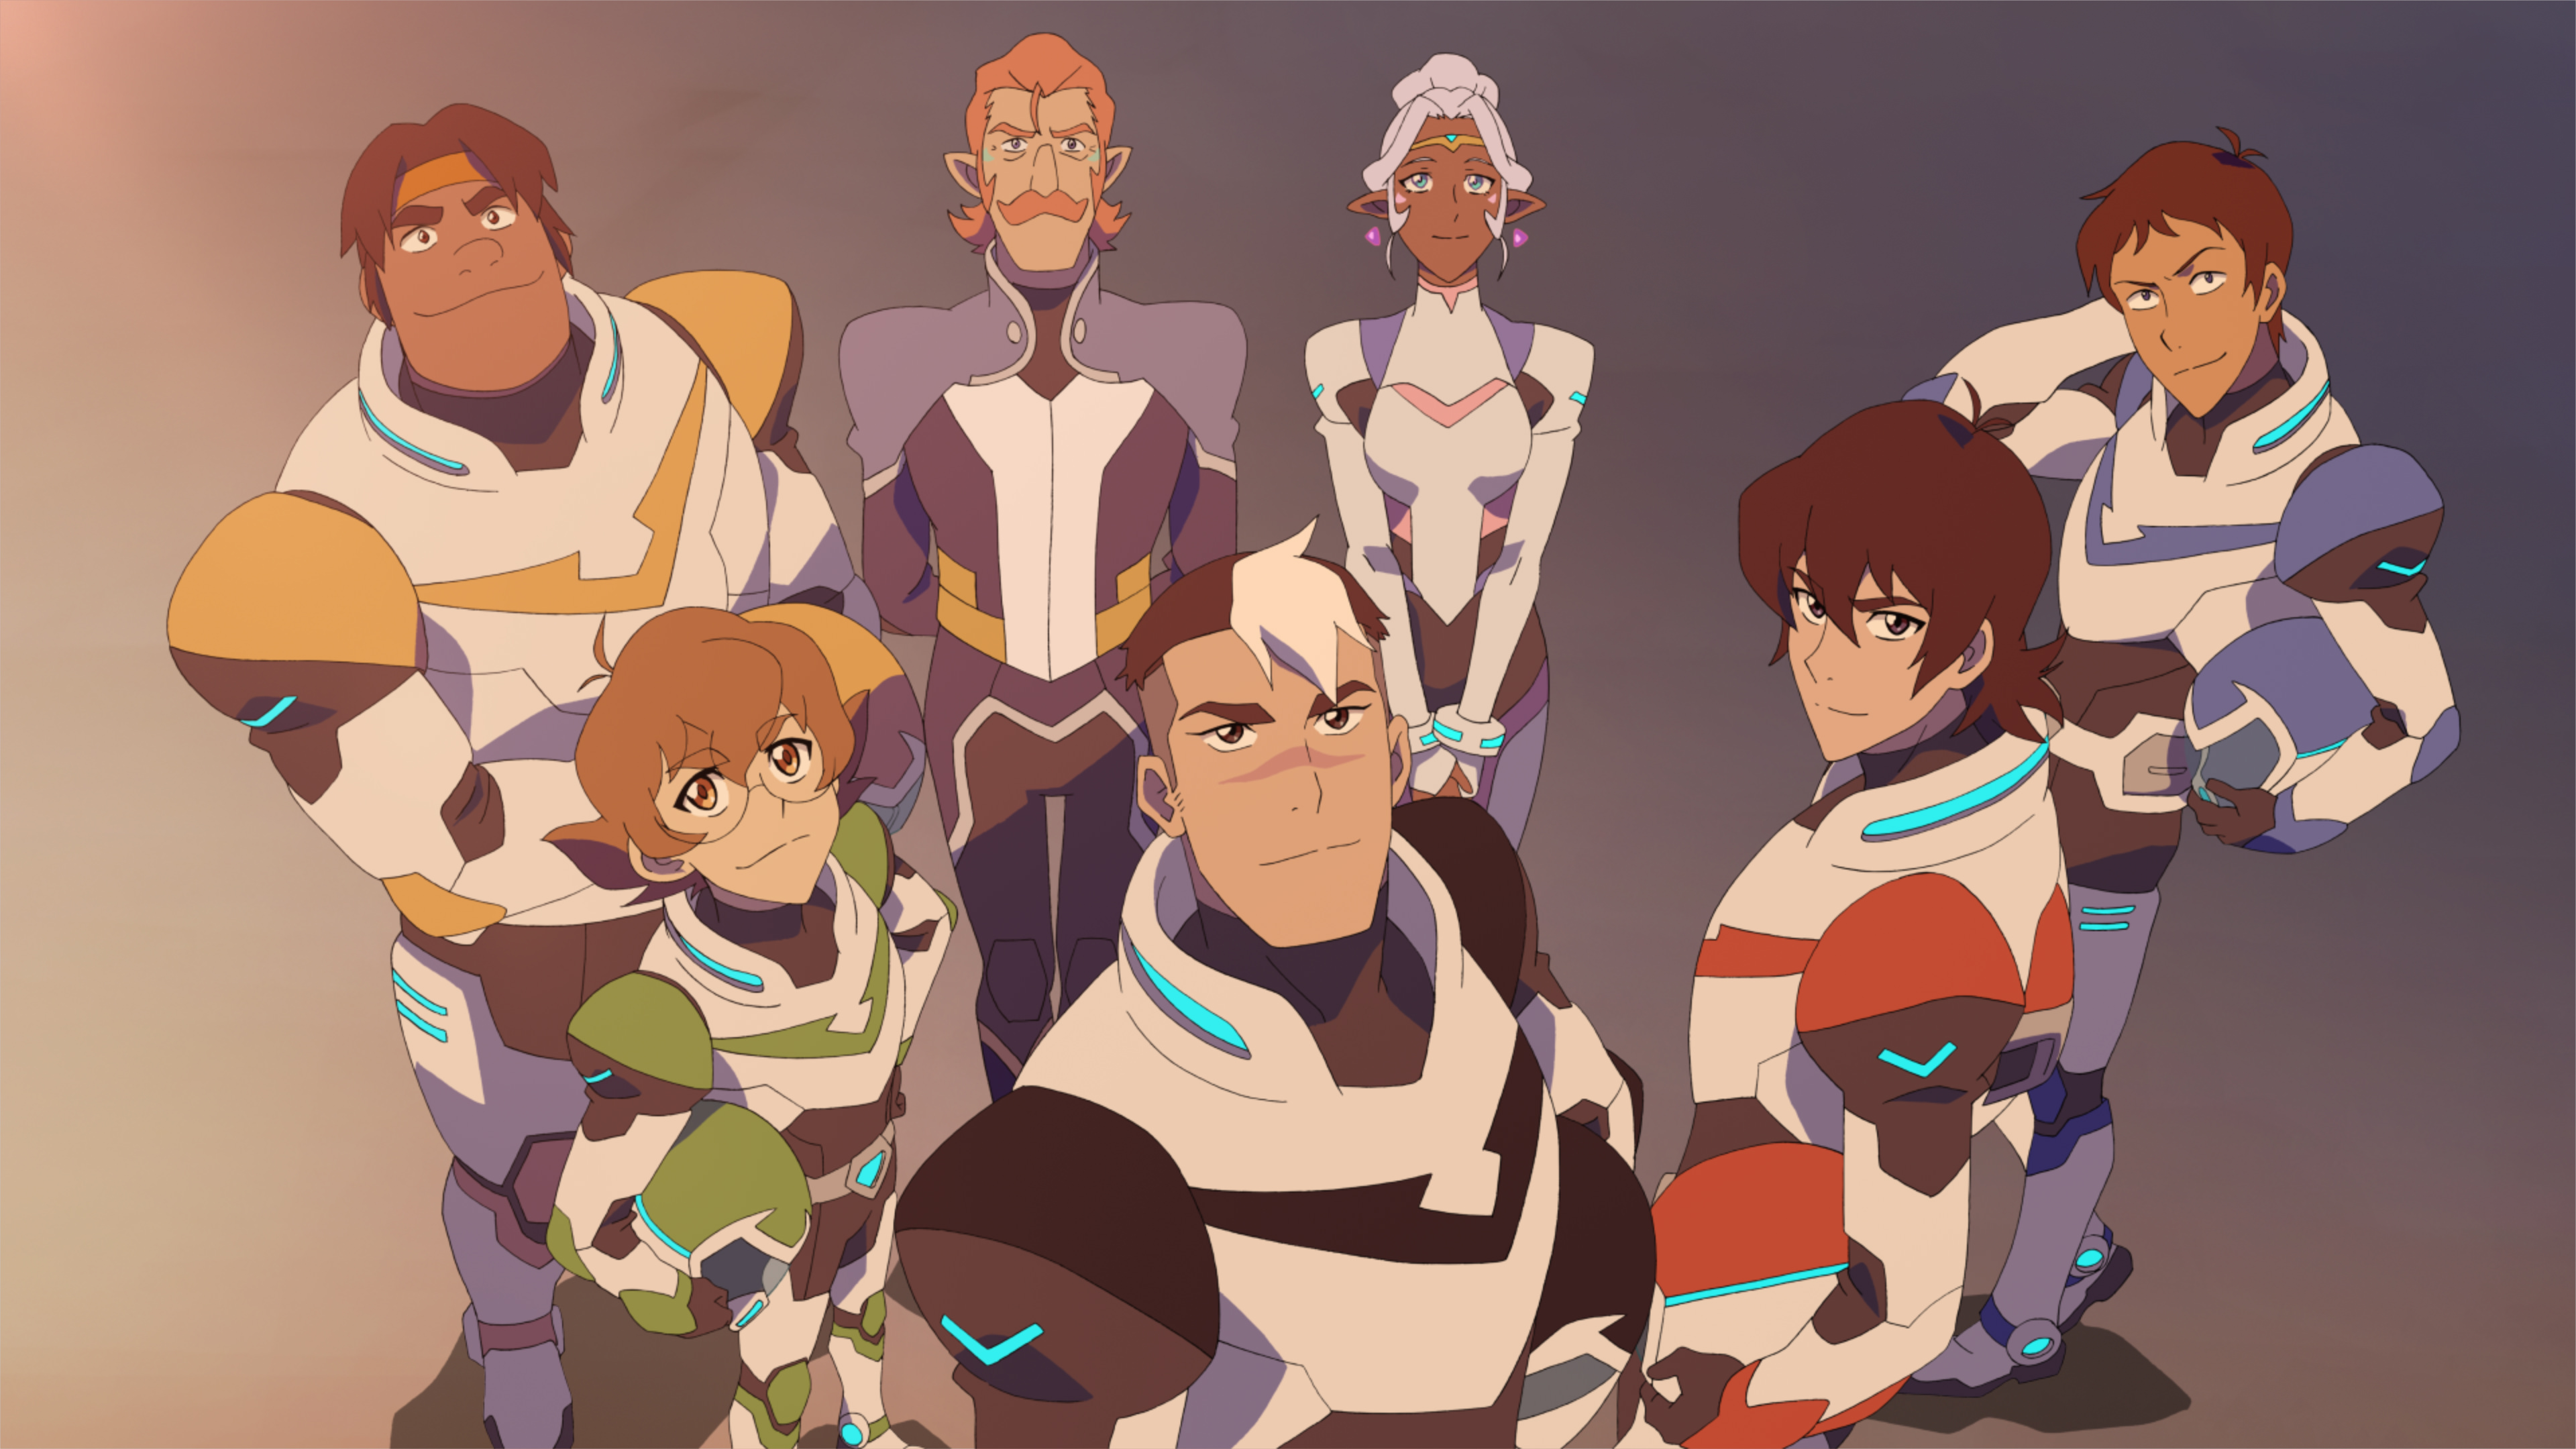 voltron-legendary-defender-team-image (1)